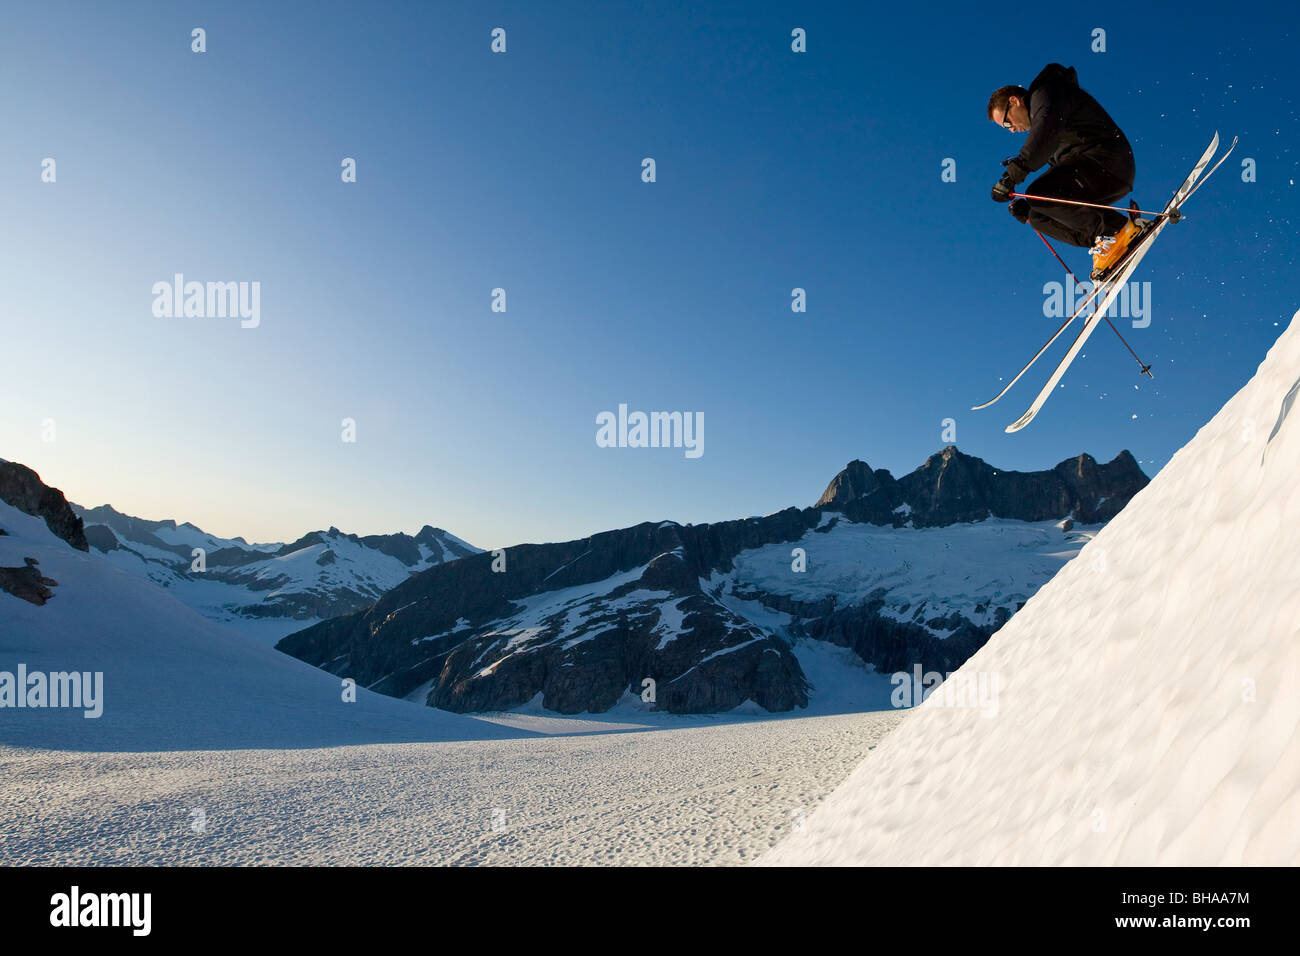 Alpine skier enjoying the wide open and uncrowded skiing in the Juneau area, Mendenhall Glacier, Southeast Alaska Stock Photo